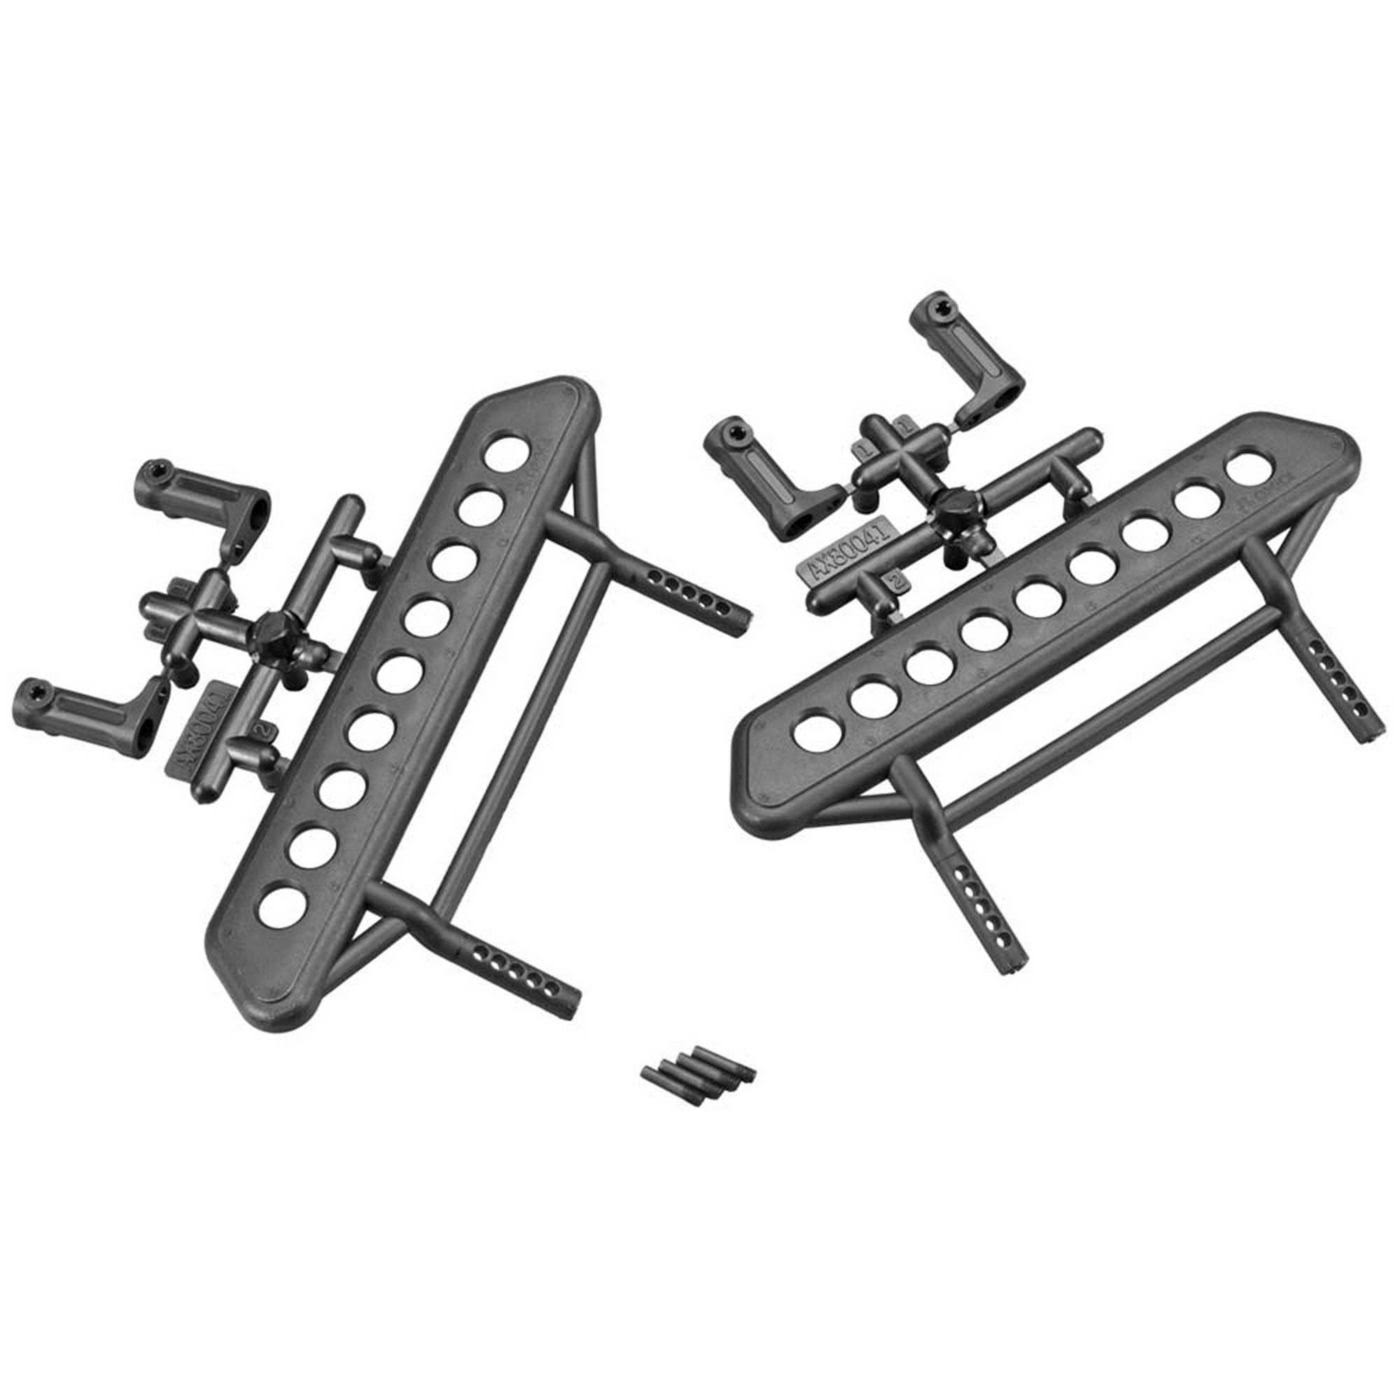 Axial SCX10 II 2 Jeep Cherokee AX80041Rock Rails Set - 1:10 Scale